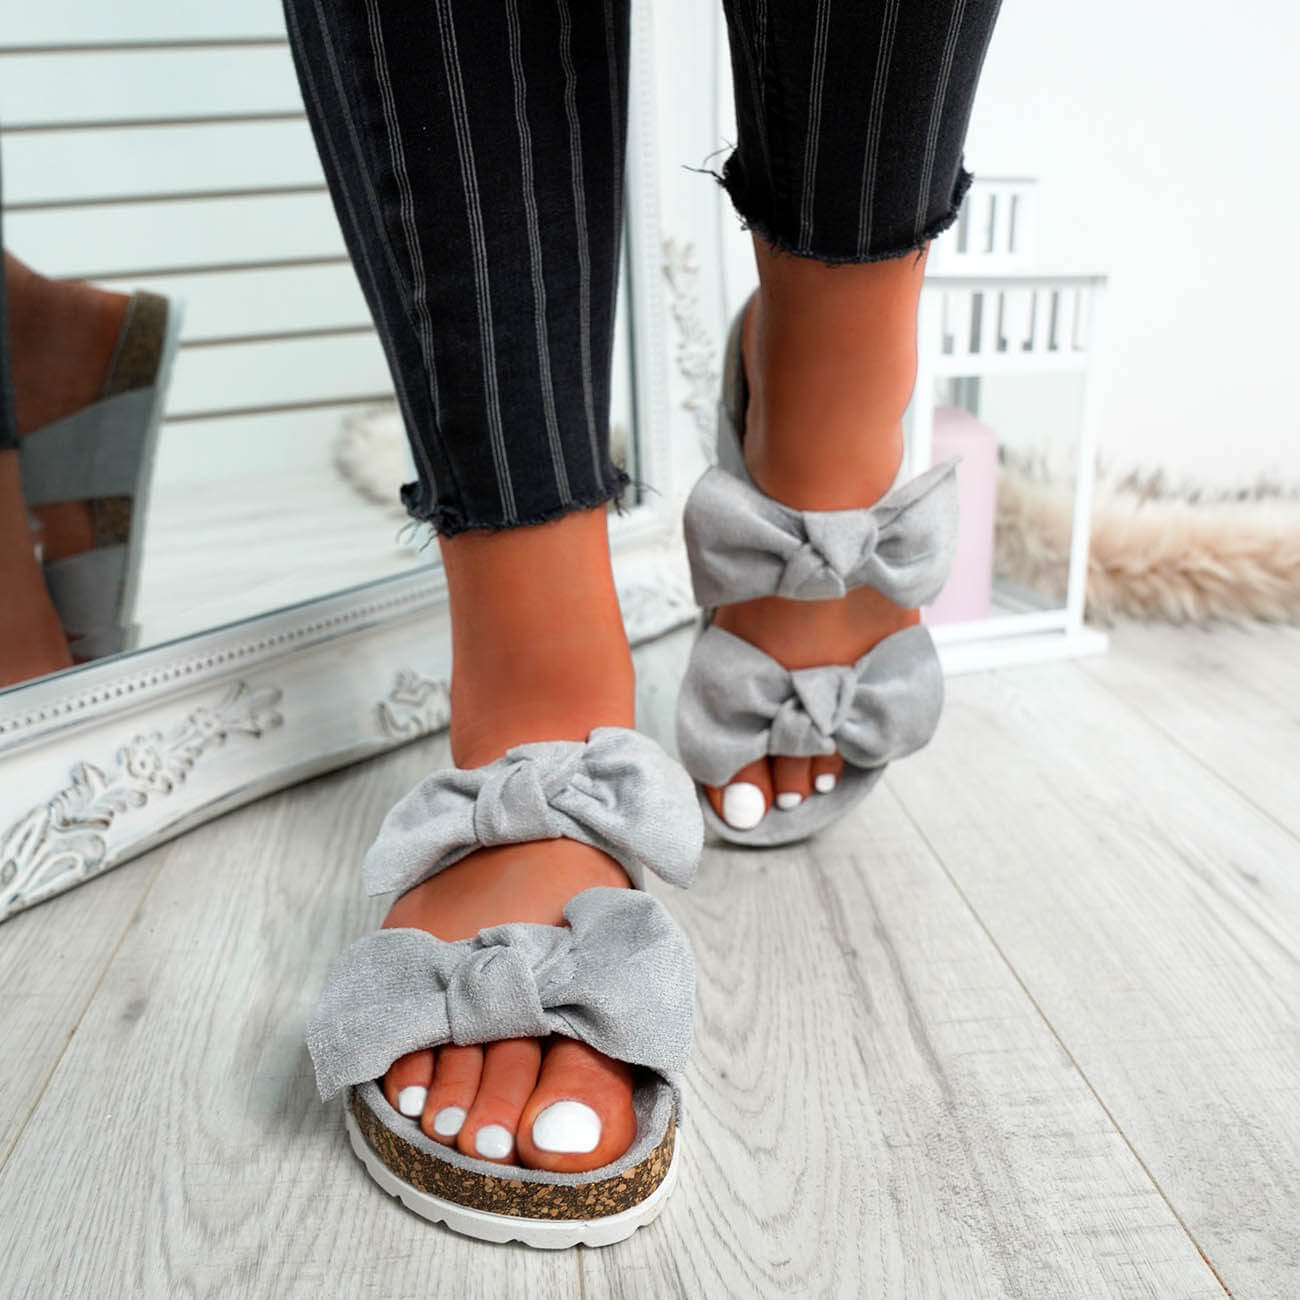 WOMENS-LADIES-PEEP-TOE-SLIP-ON-DOUBLE-BOW-FLAT-SANDALS-PARTY-CLUB-SUMMER-SHOES thumbnail 32